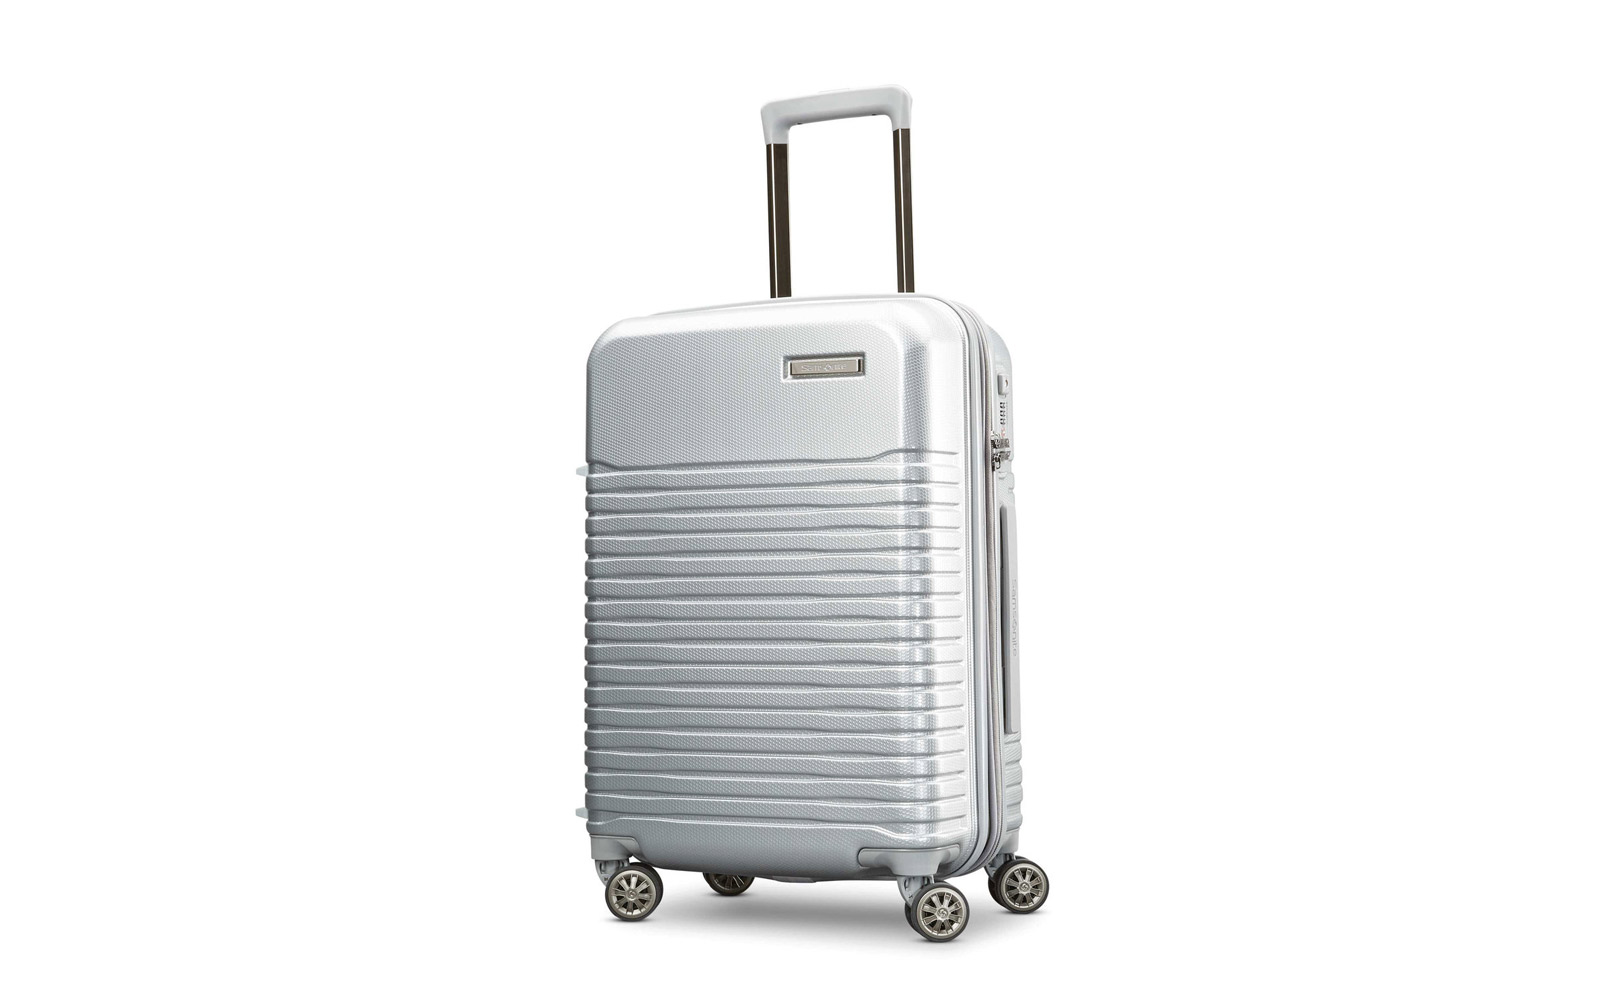 b219259cf71f The Best Carry-on Luggage of 2019, According to Travel Editors ...